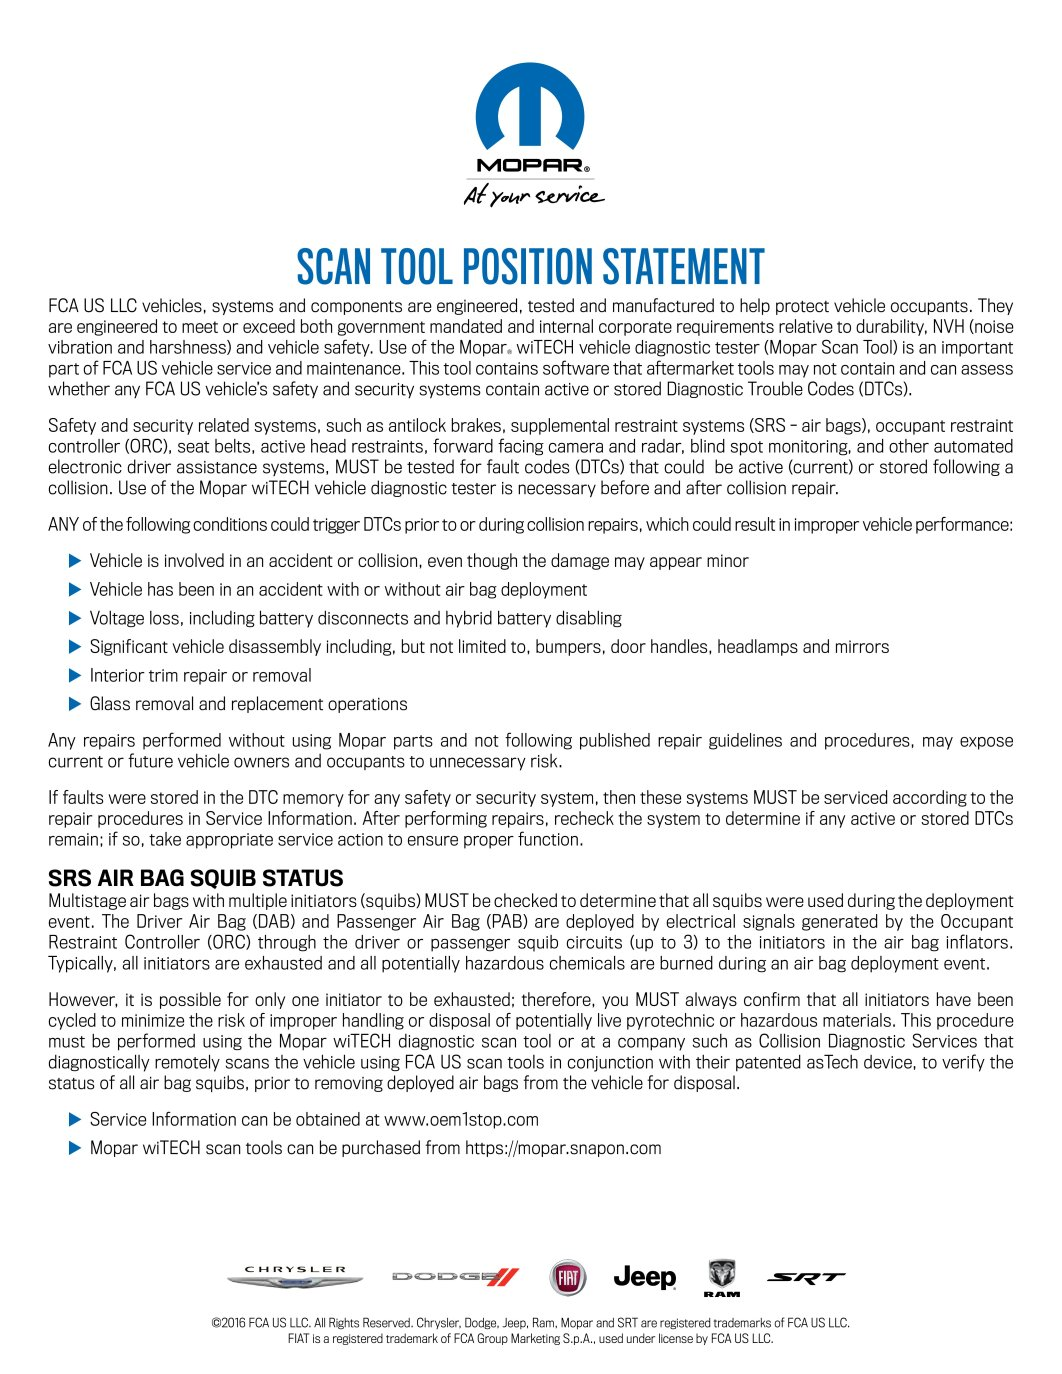 Mopar Scan Tool PositionStatement-ScannerUse_v01r02